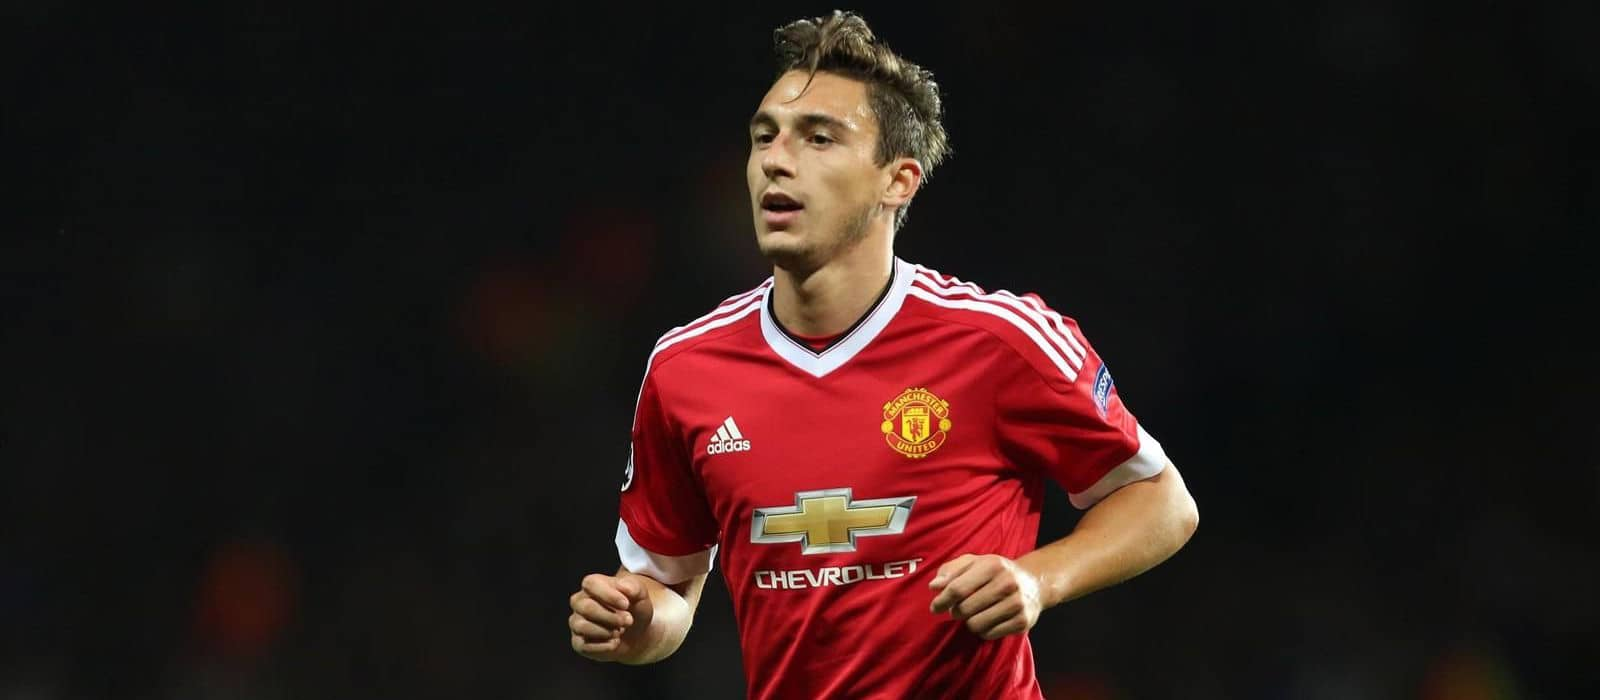 Juventus make contact with Manchester United over Matteo Darmian – report